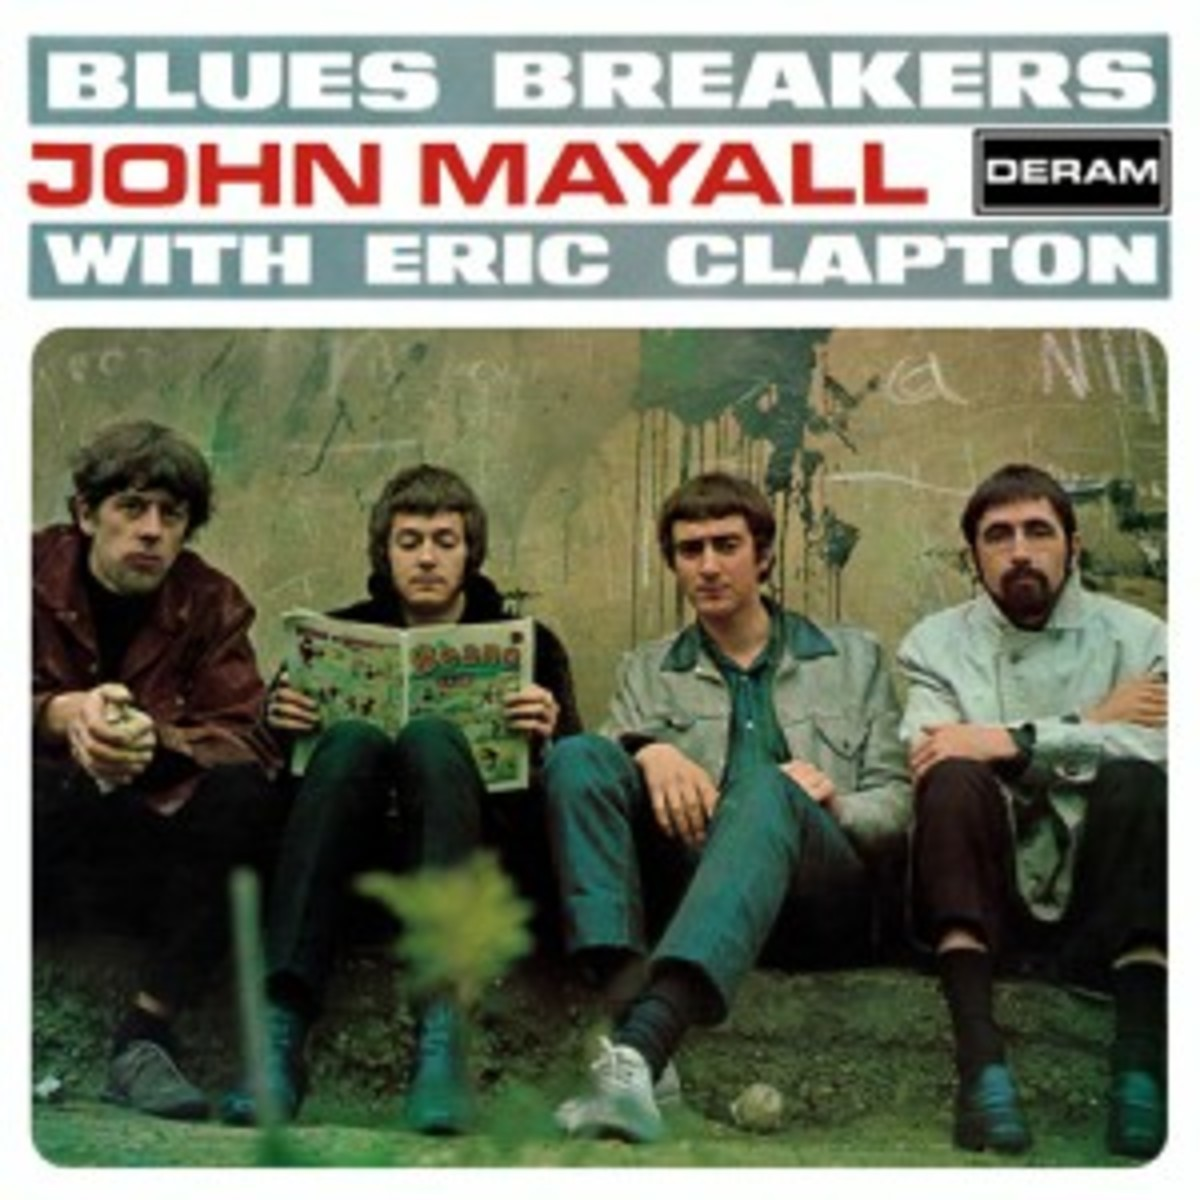 Blues Braeakers John Mayall with Eric Clapton